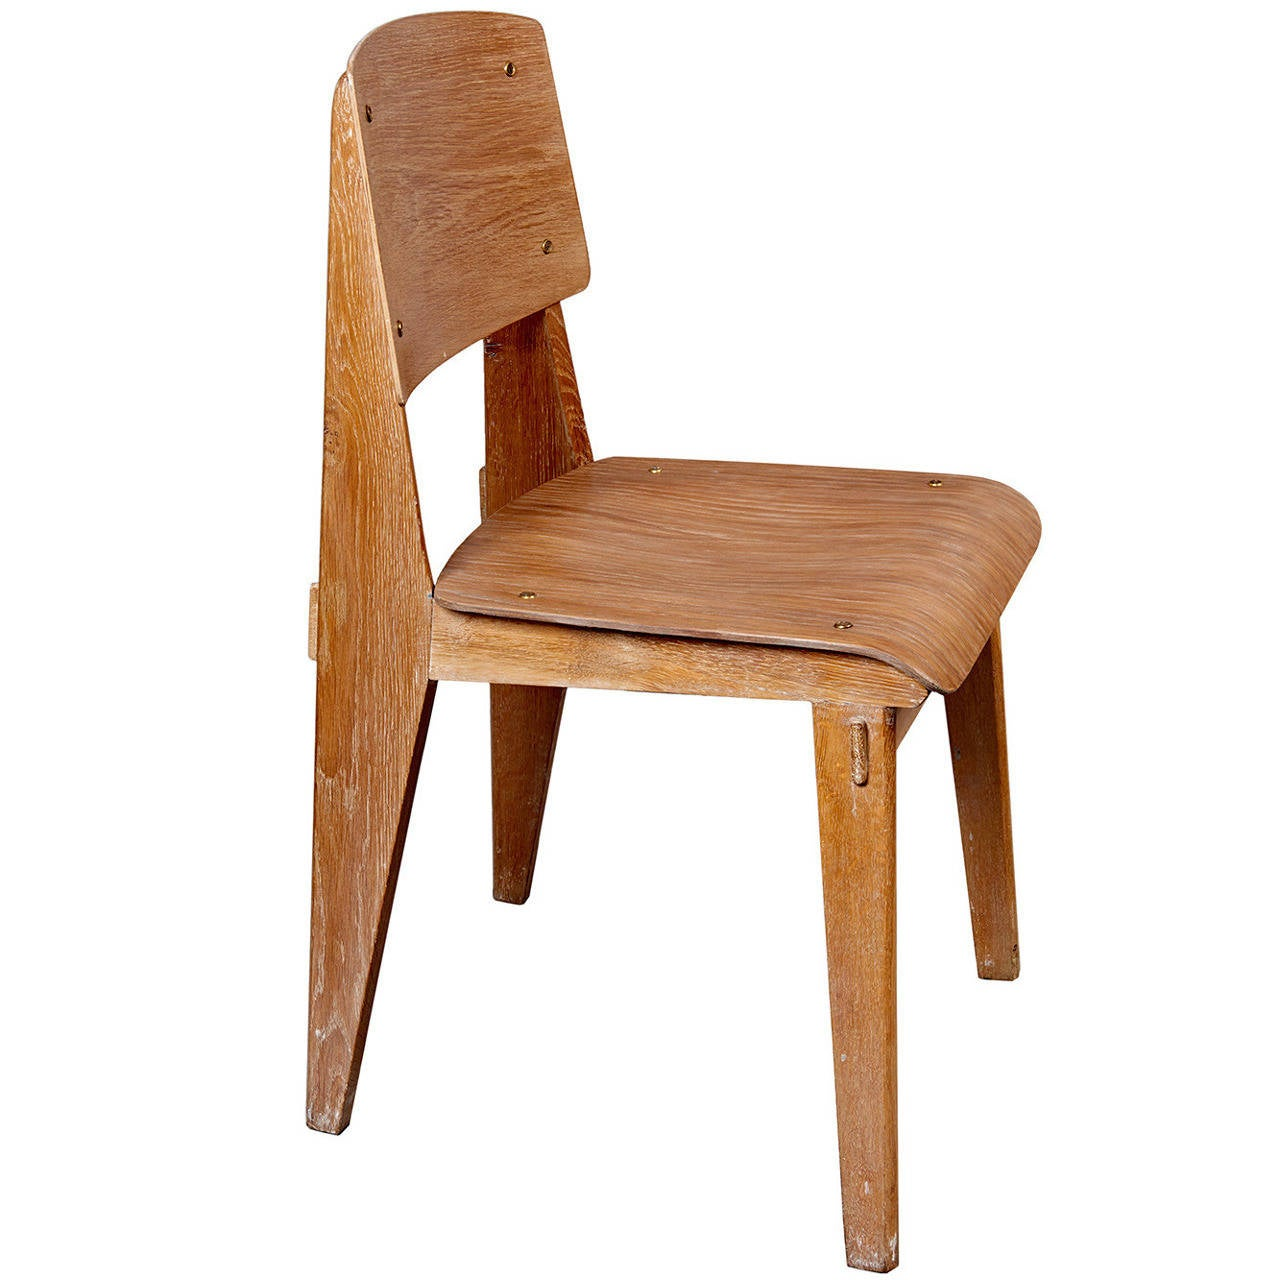 Standard Chair Tout Bois By Jean Prouv At 1stdibs